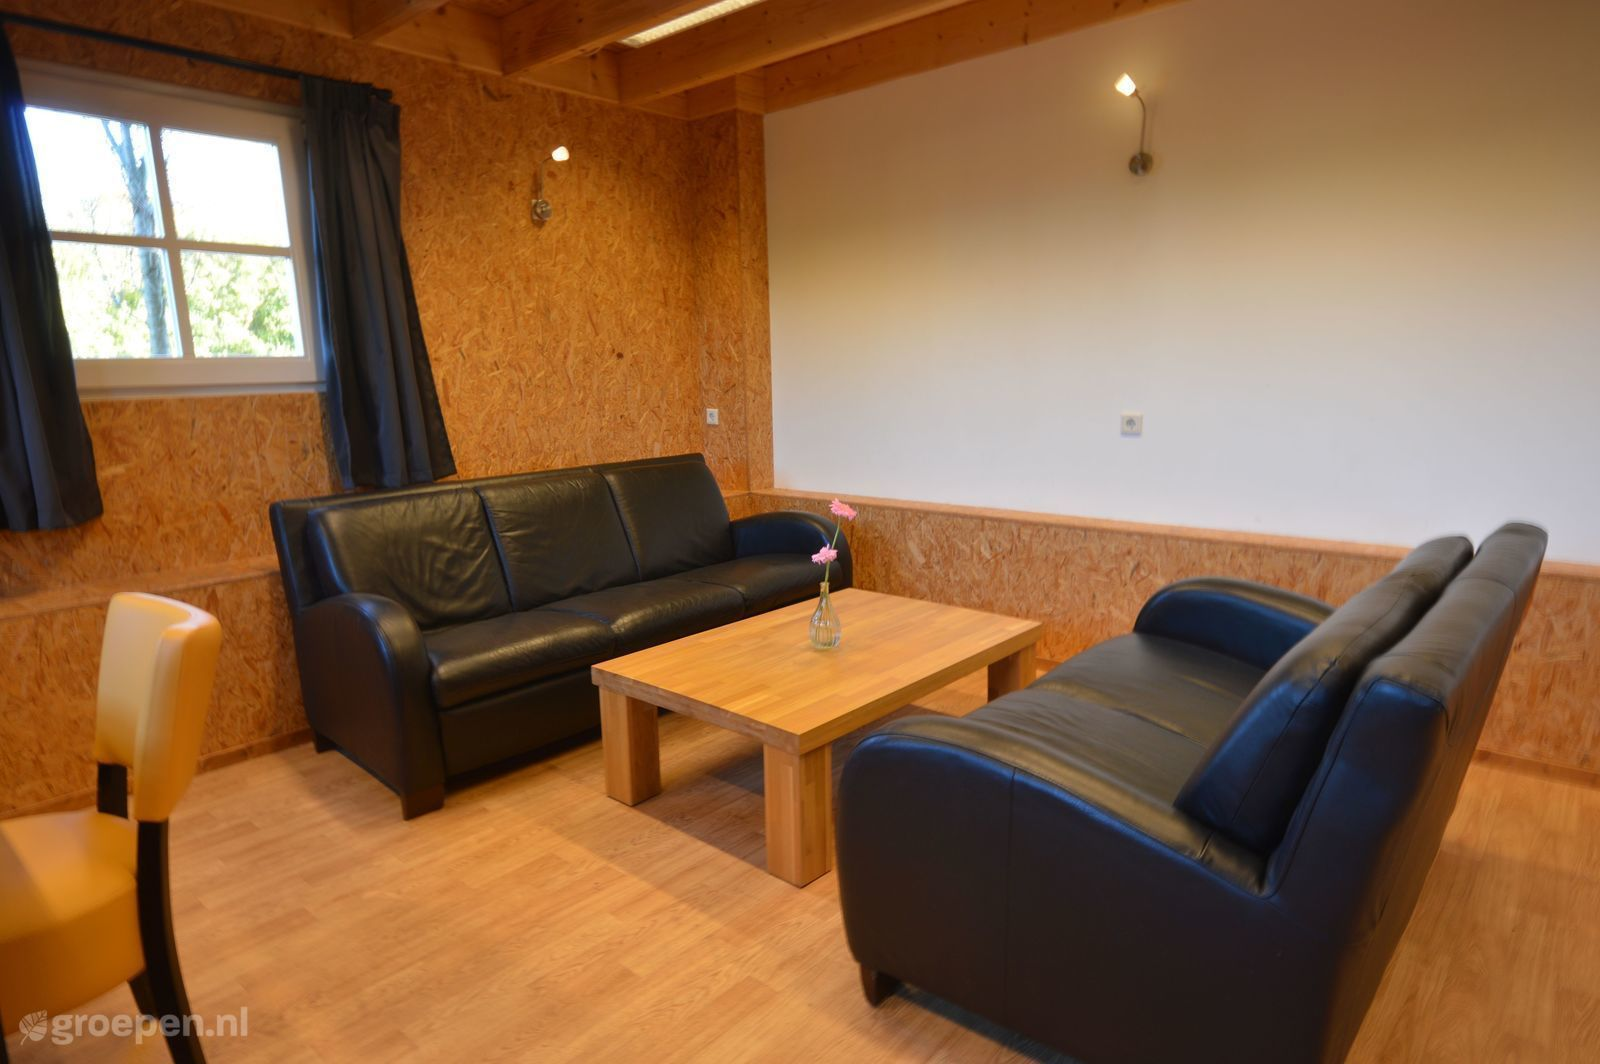 Group accommodation Lochem